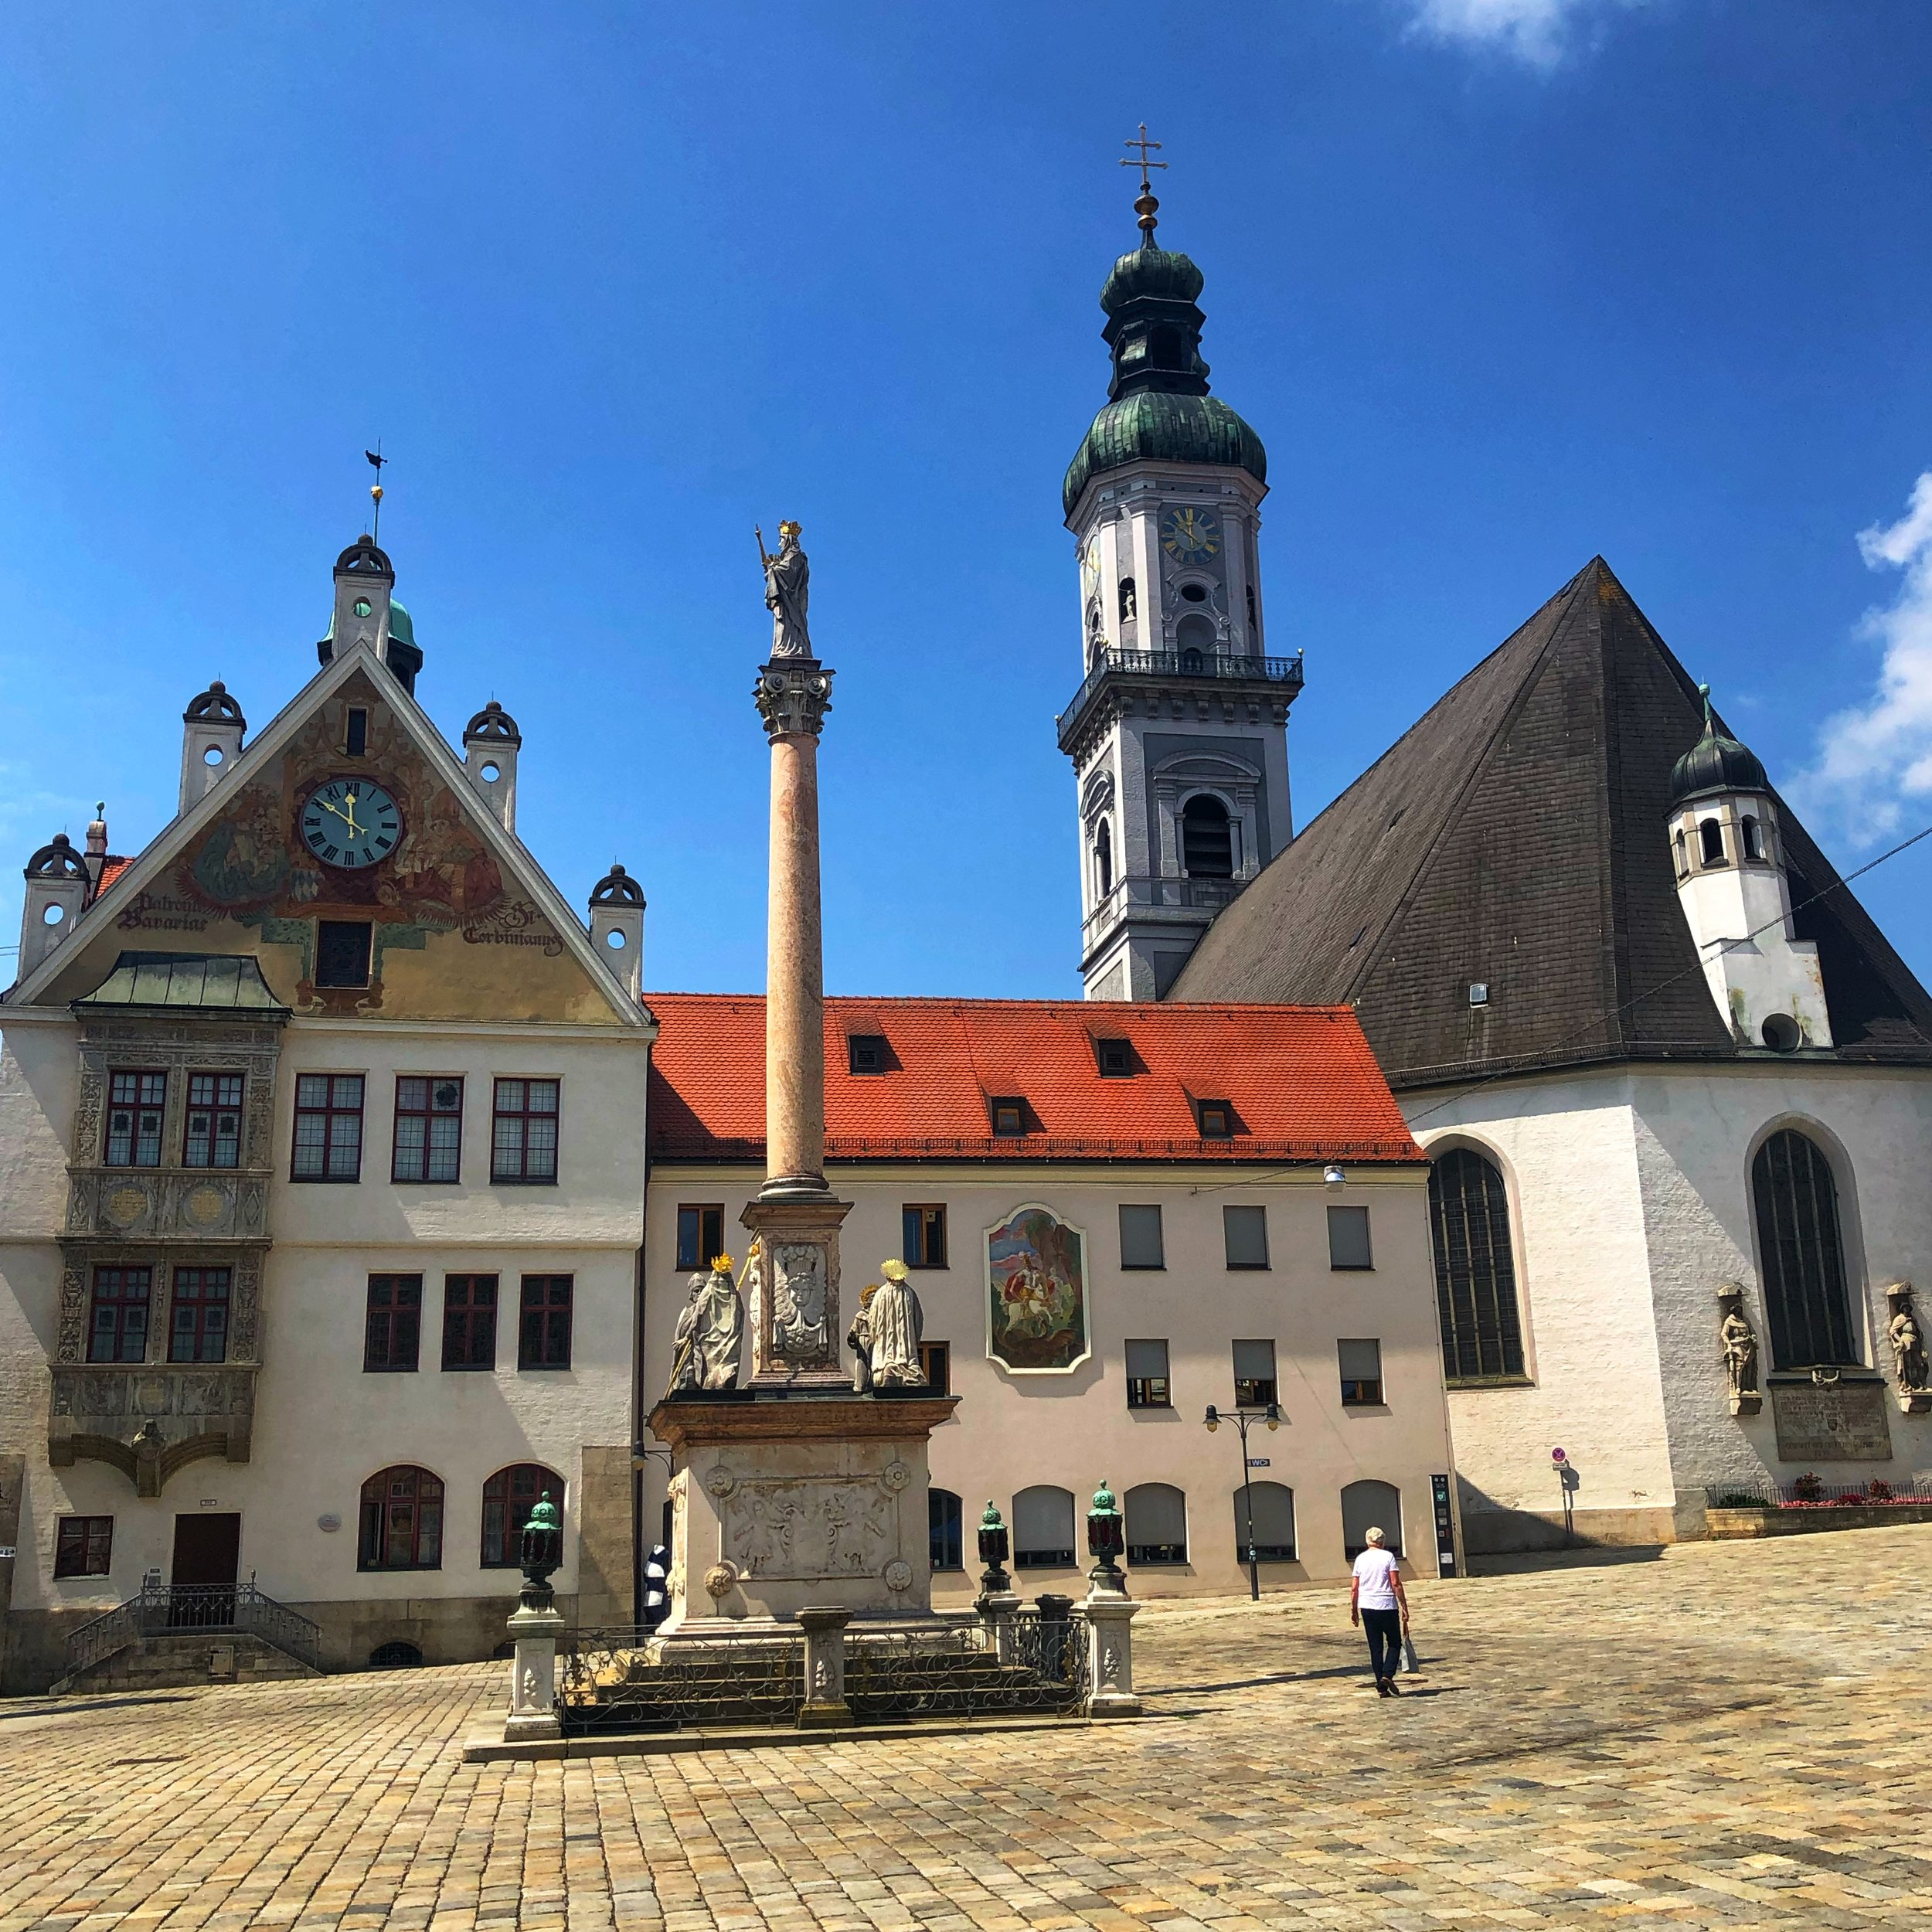 The town square in Freising (Yes it's on a hill!)